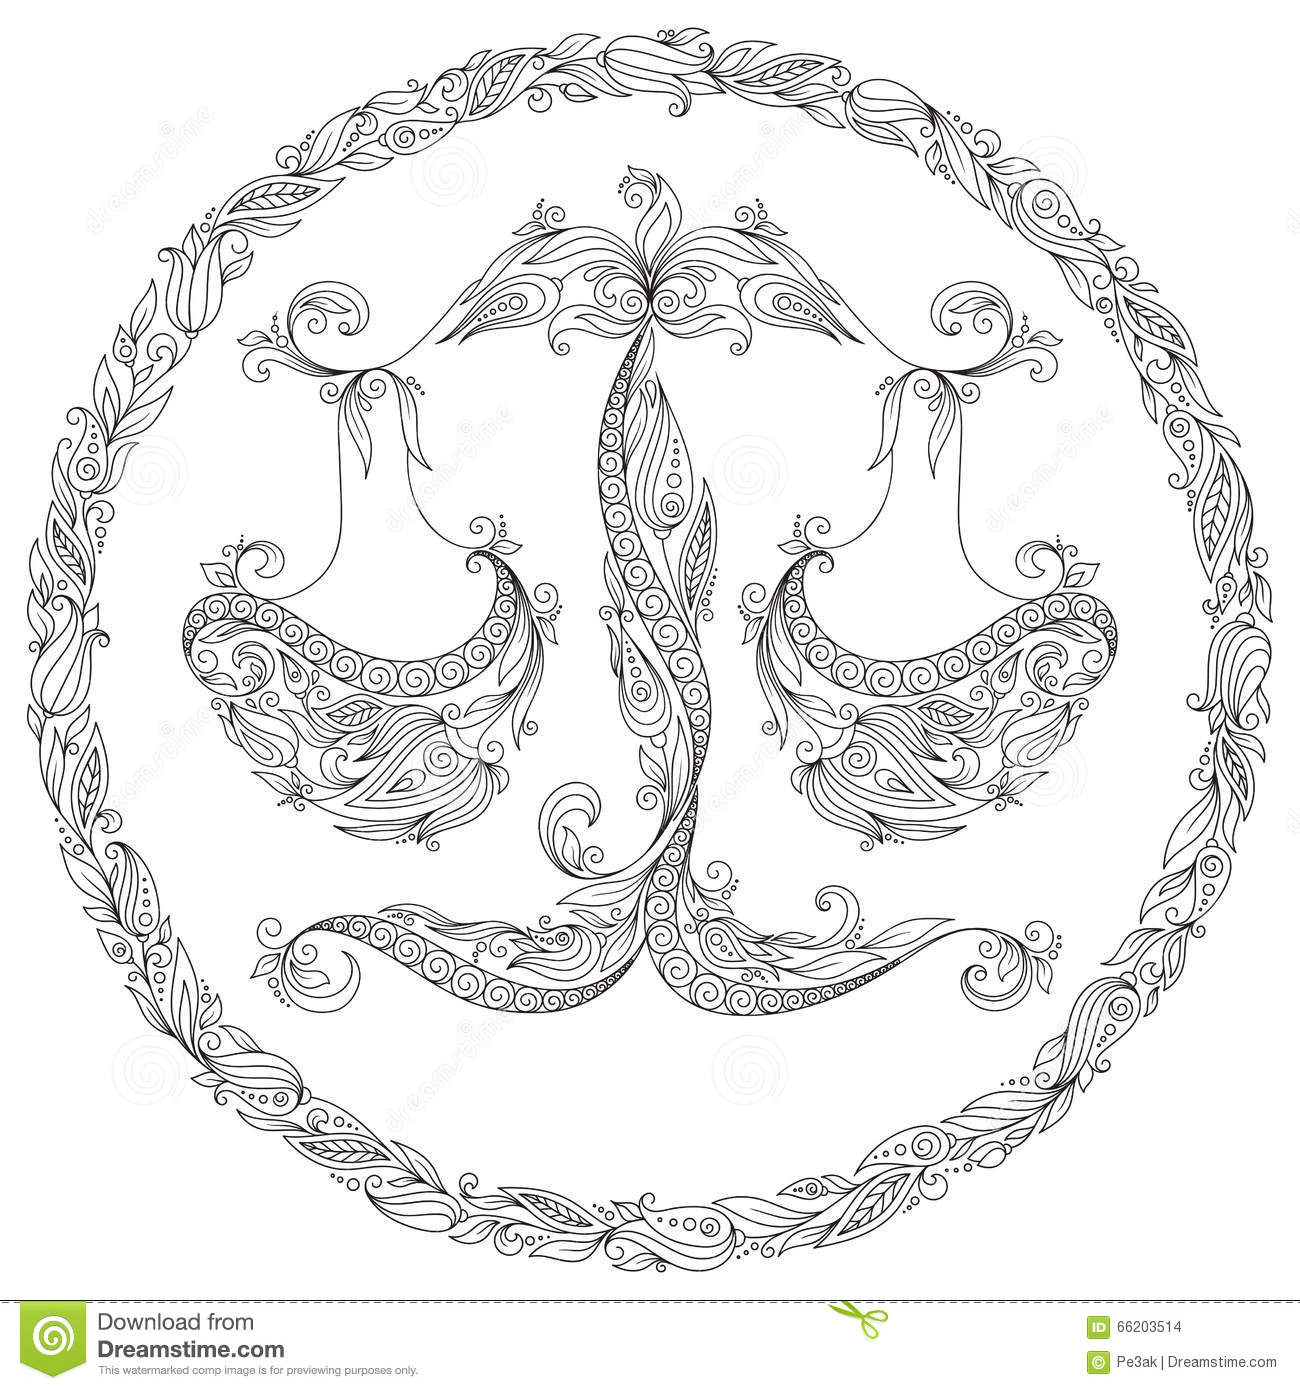 Coloring pages of mehndi hand pattern - Royalty Free Illustration Download Pattern For Coloring